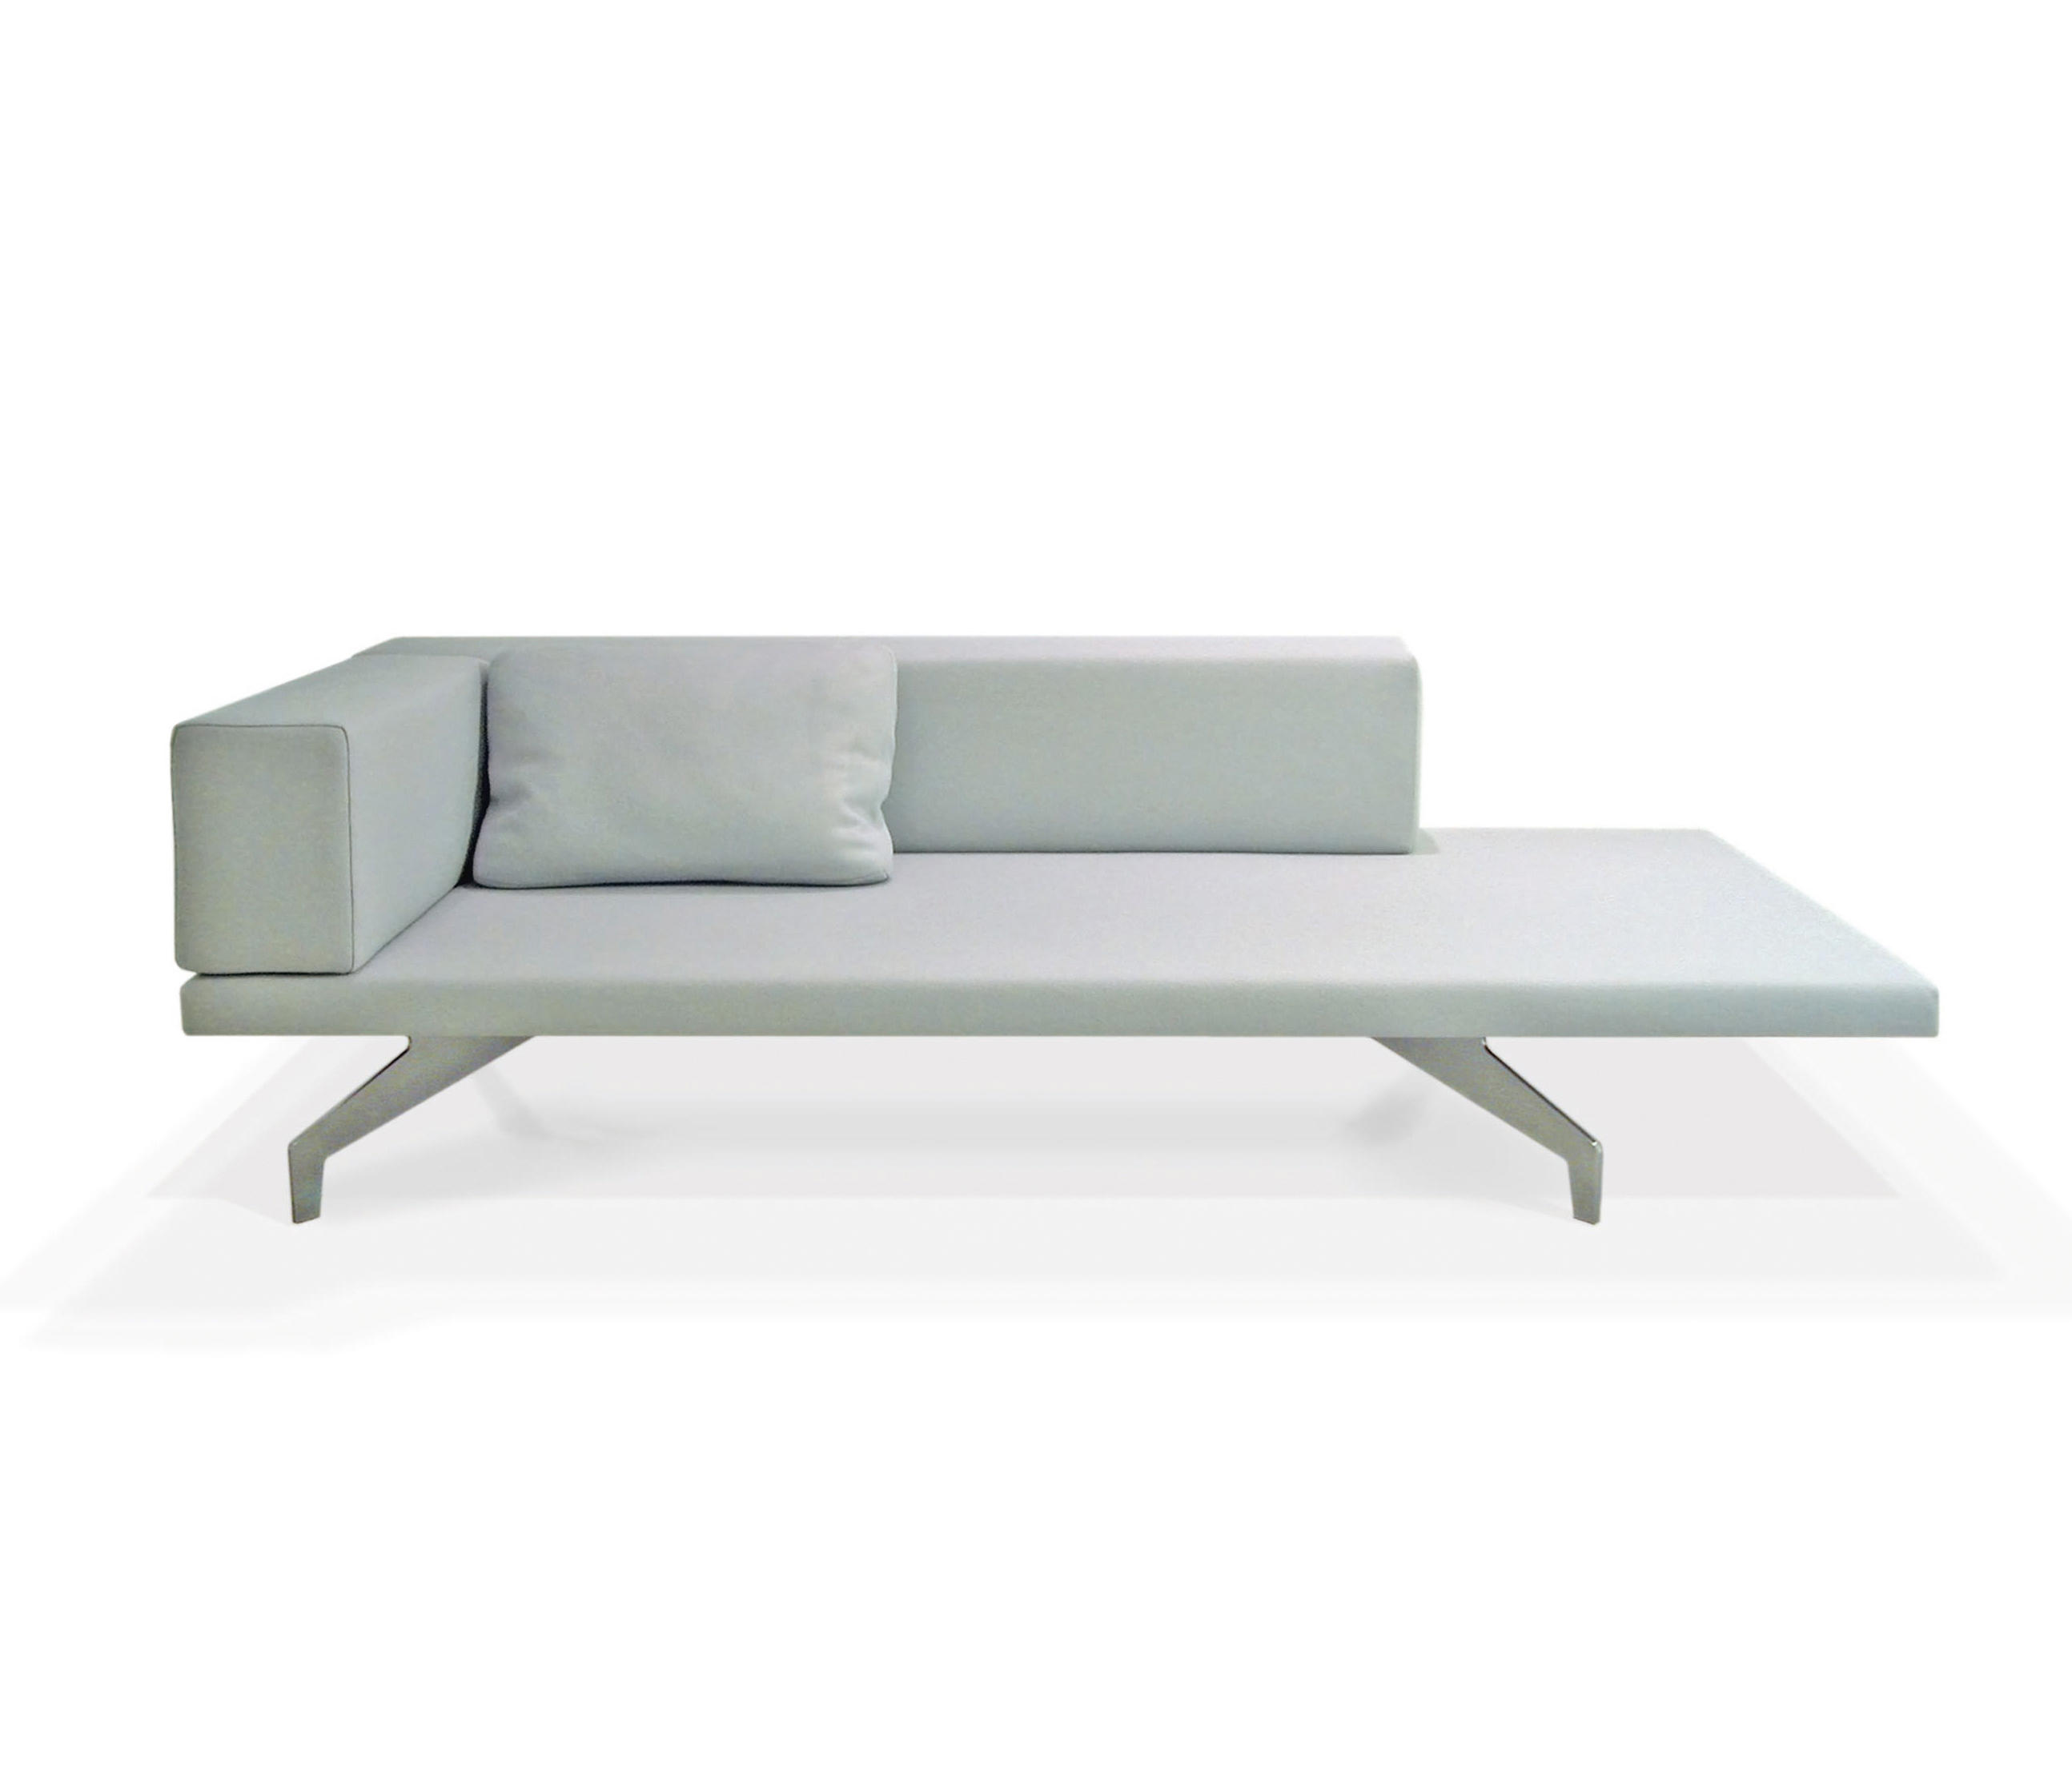 sofa left art grey bankeryd chaise sofas gb en seat ikea w fabric longue armchairs products lounge